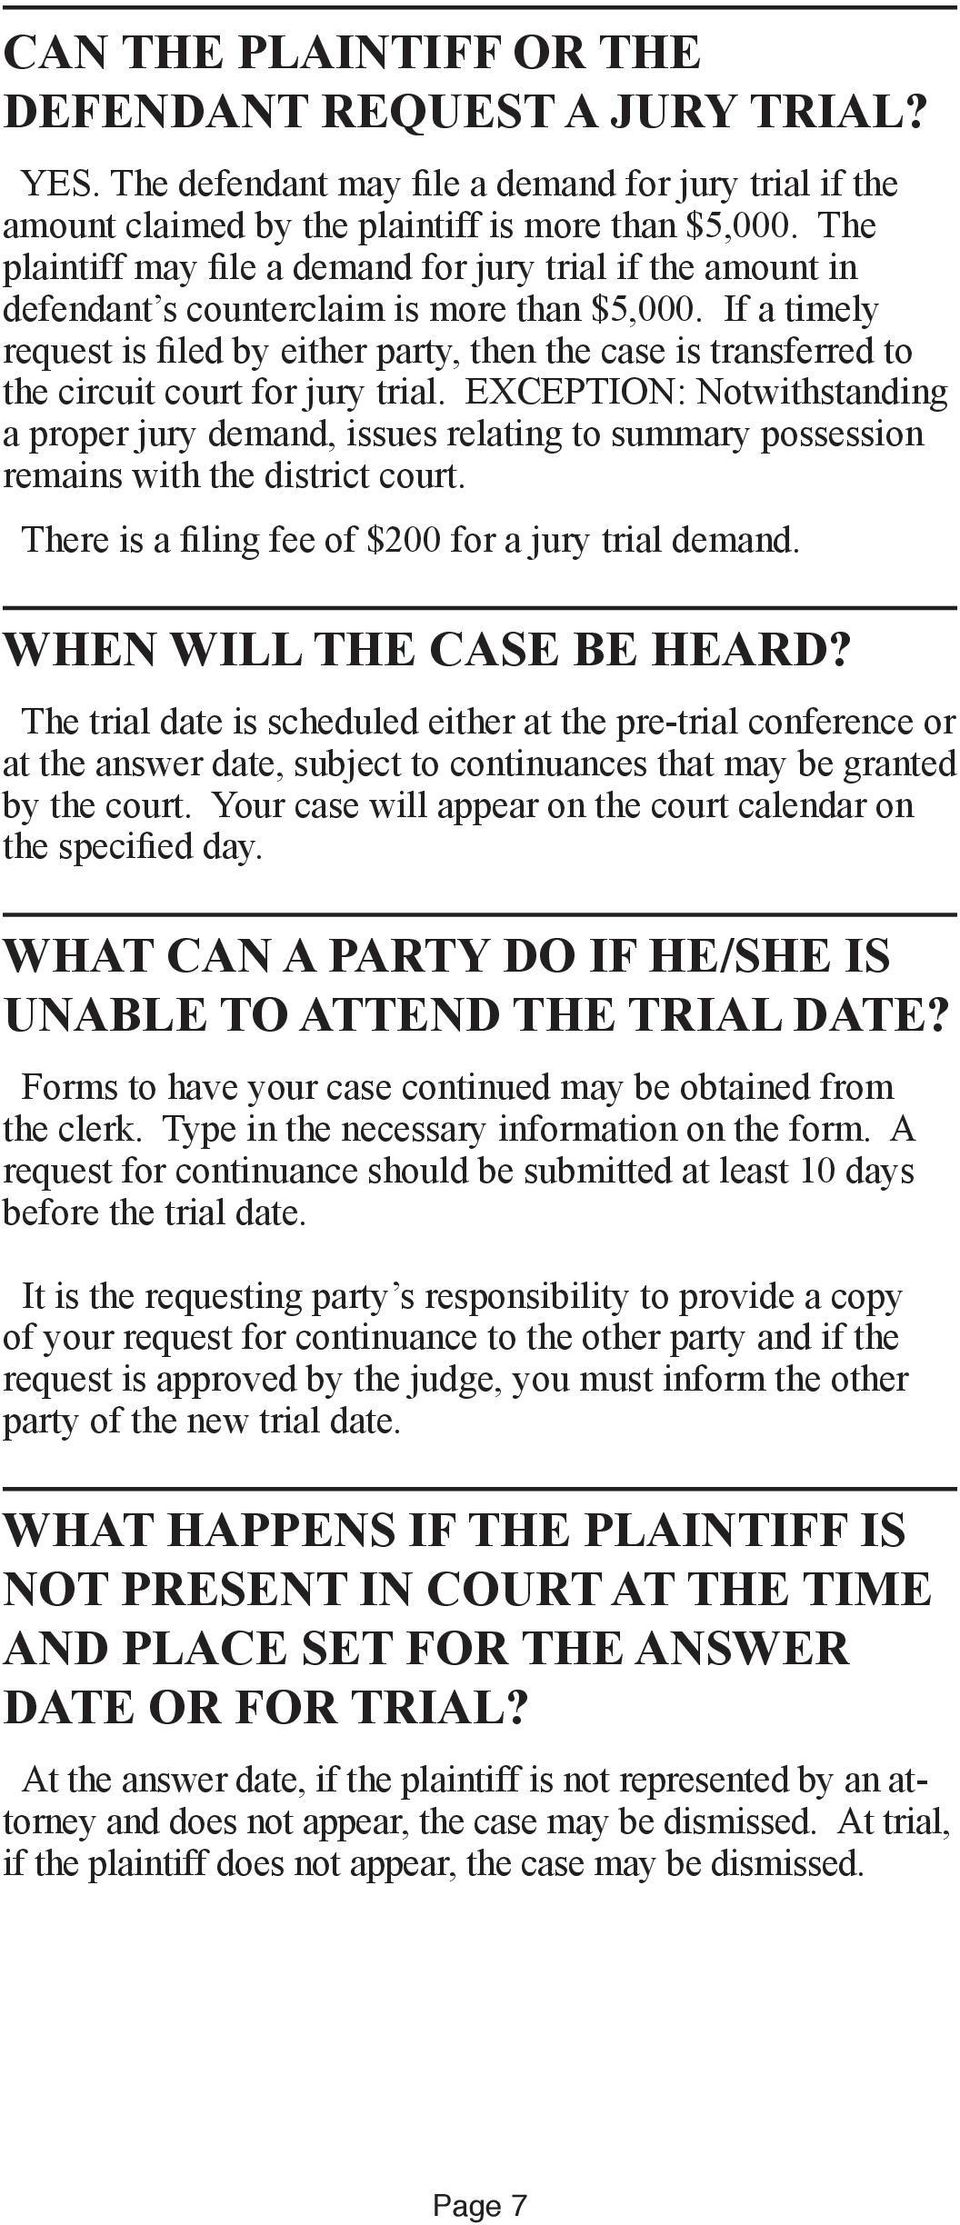 If a timely request is filed by either party, then the case is transferred to the circuit court for jury trial.